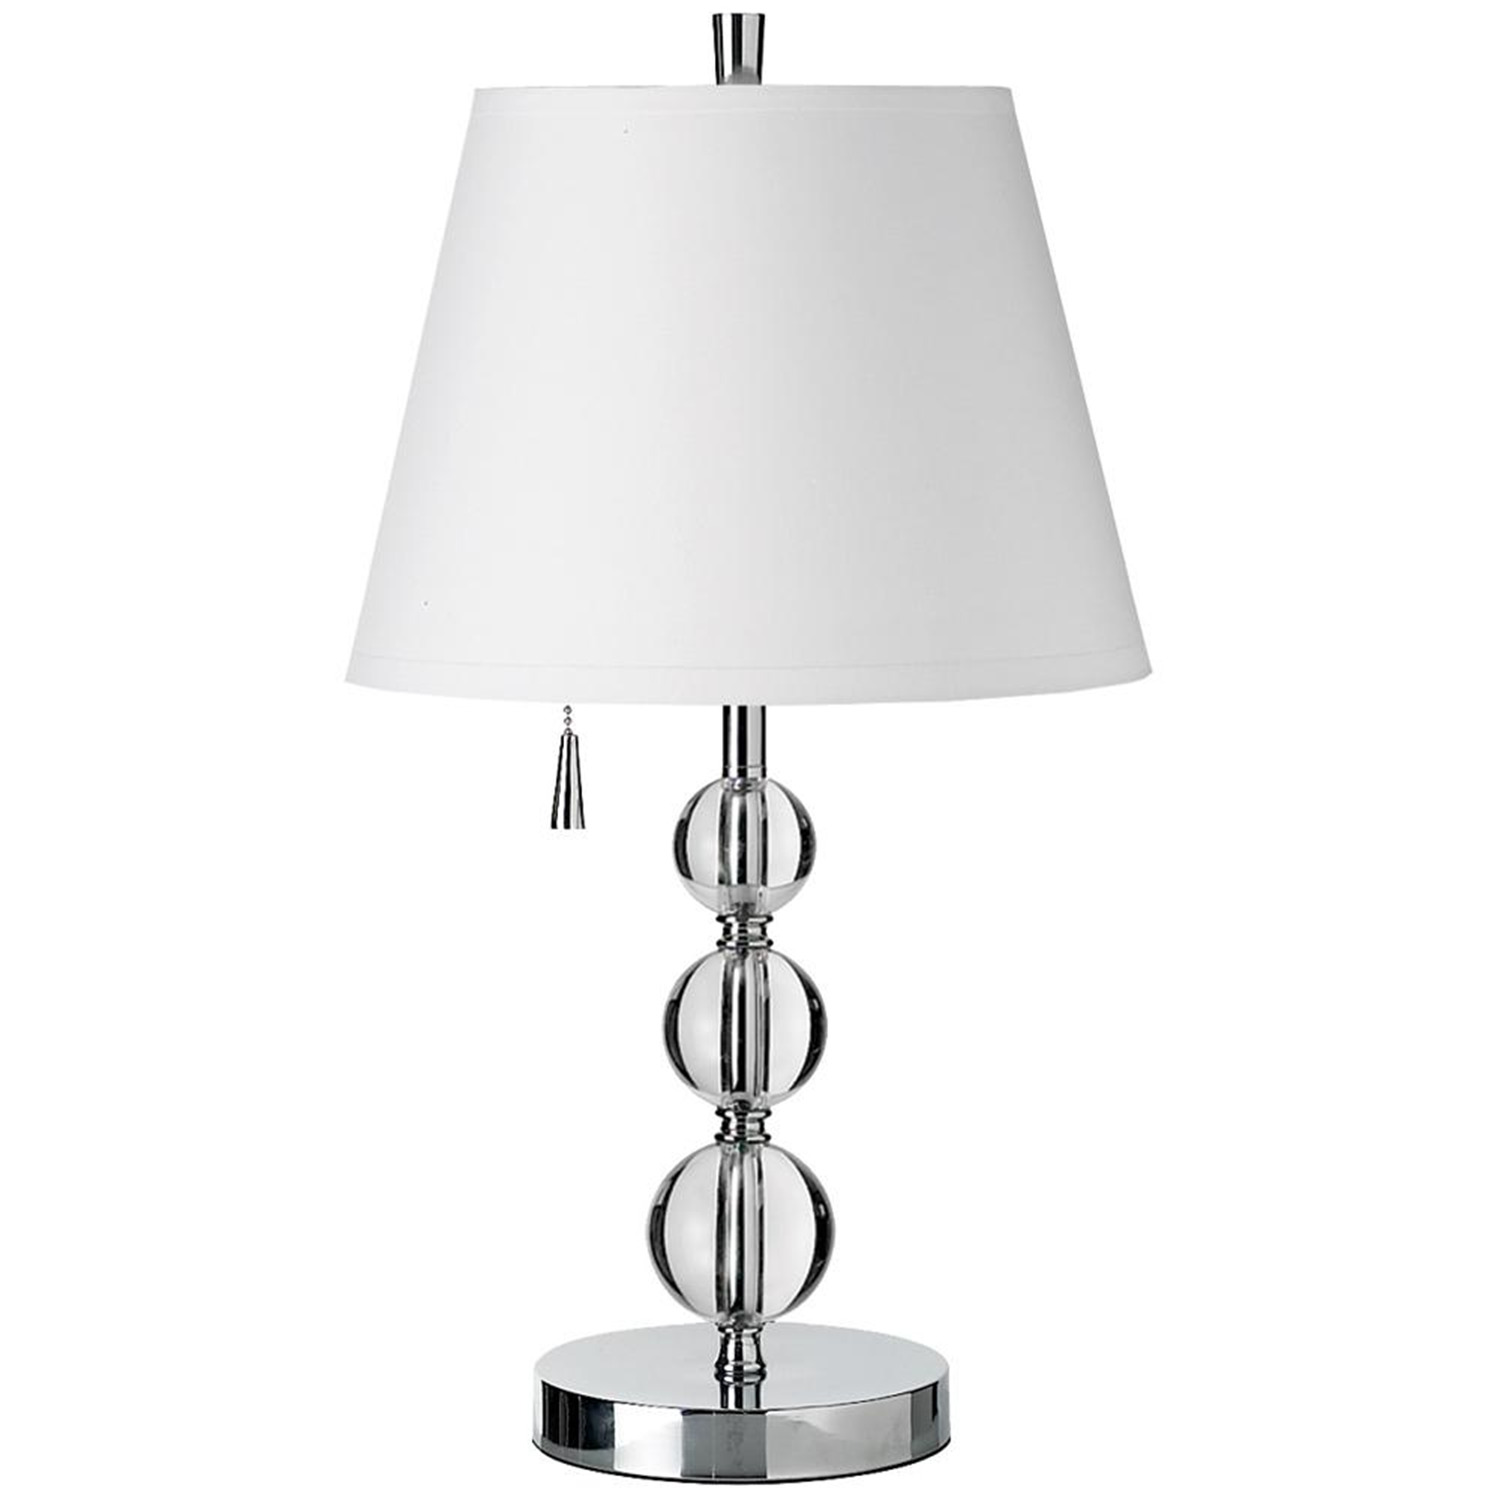 Dainolite Three Crystal Balls Table Lamp By OJ Commerce